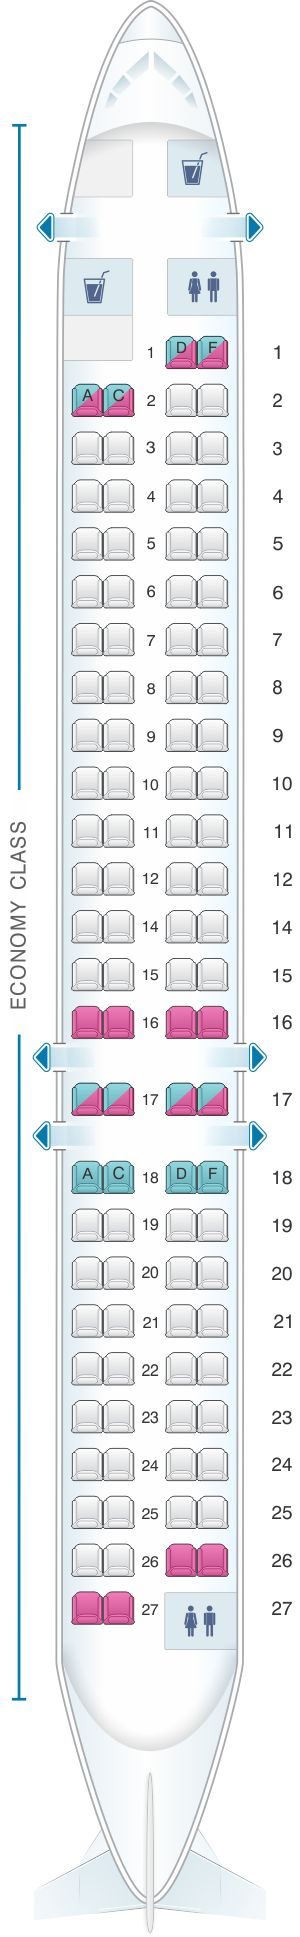 Seat Map Iberia Regional – Air Nostrum CRJ 1000